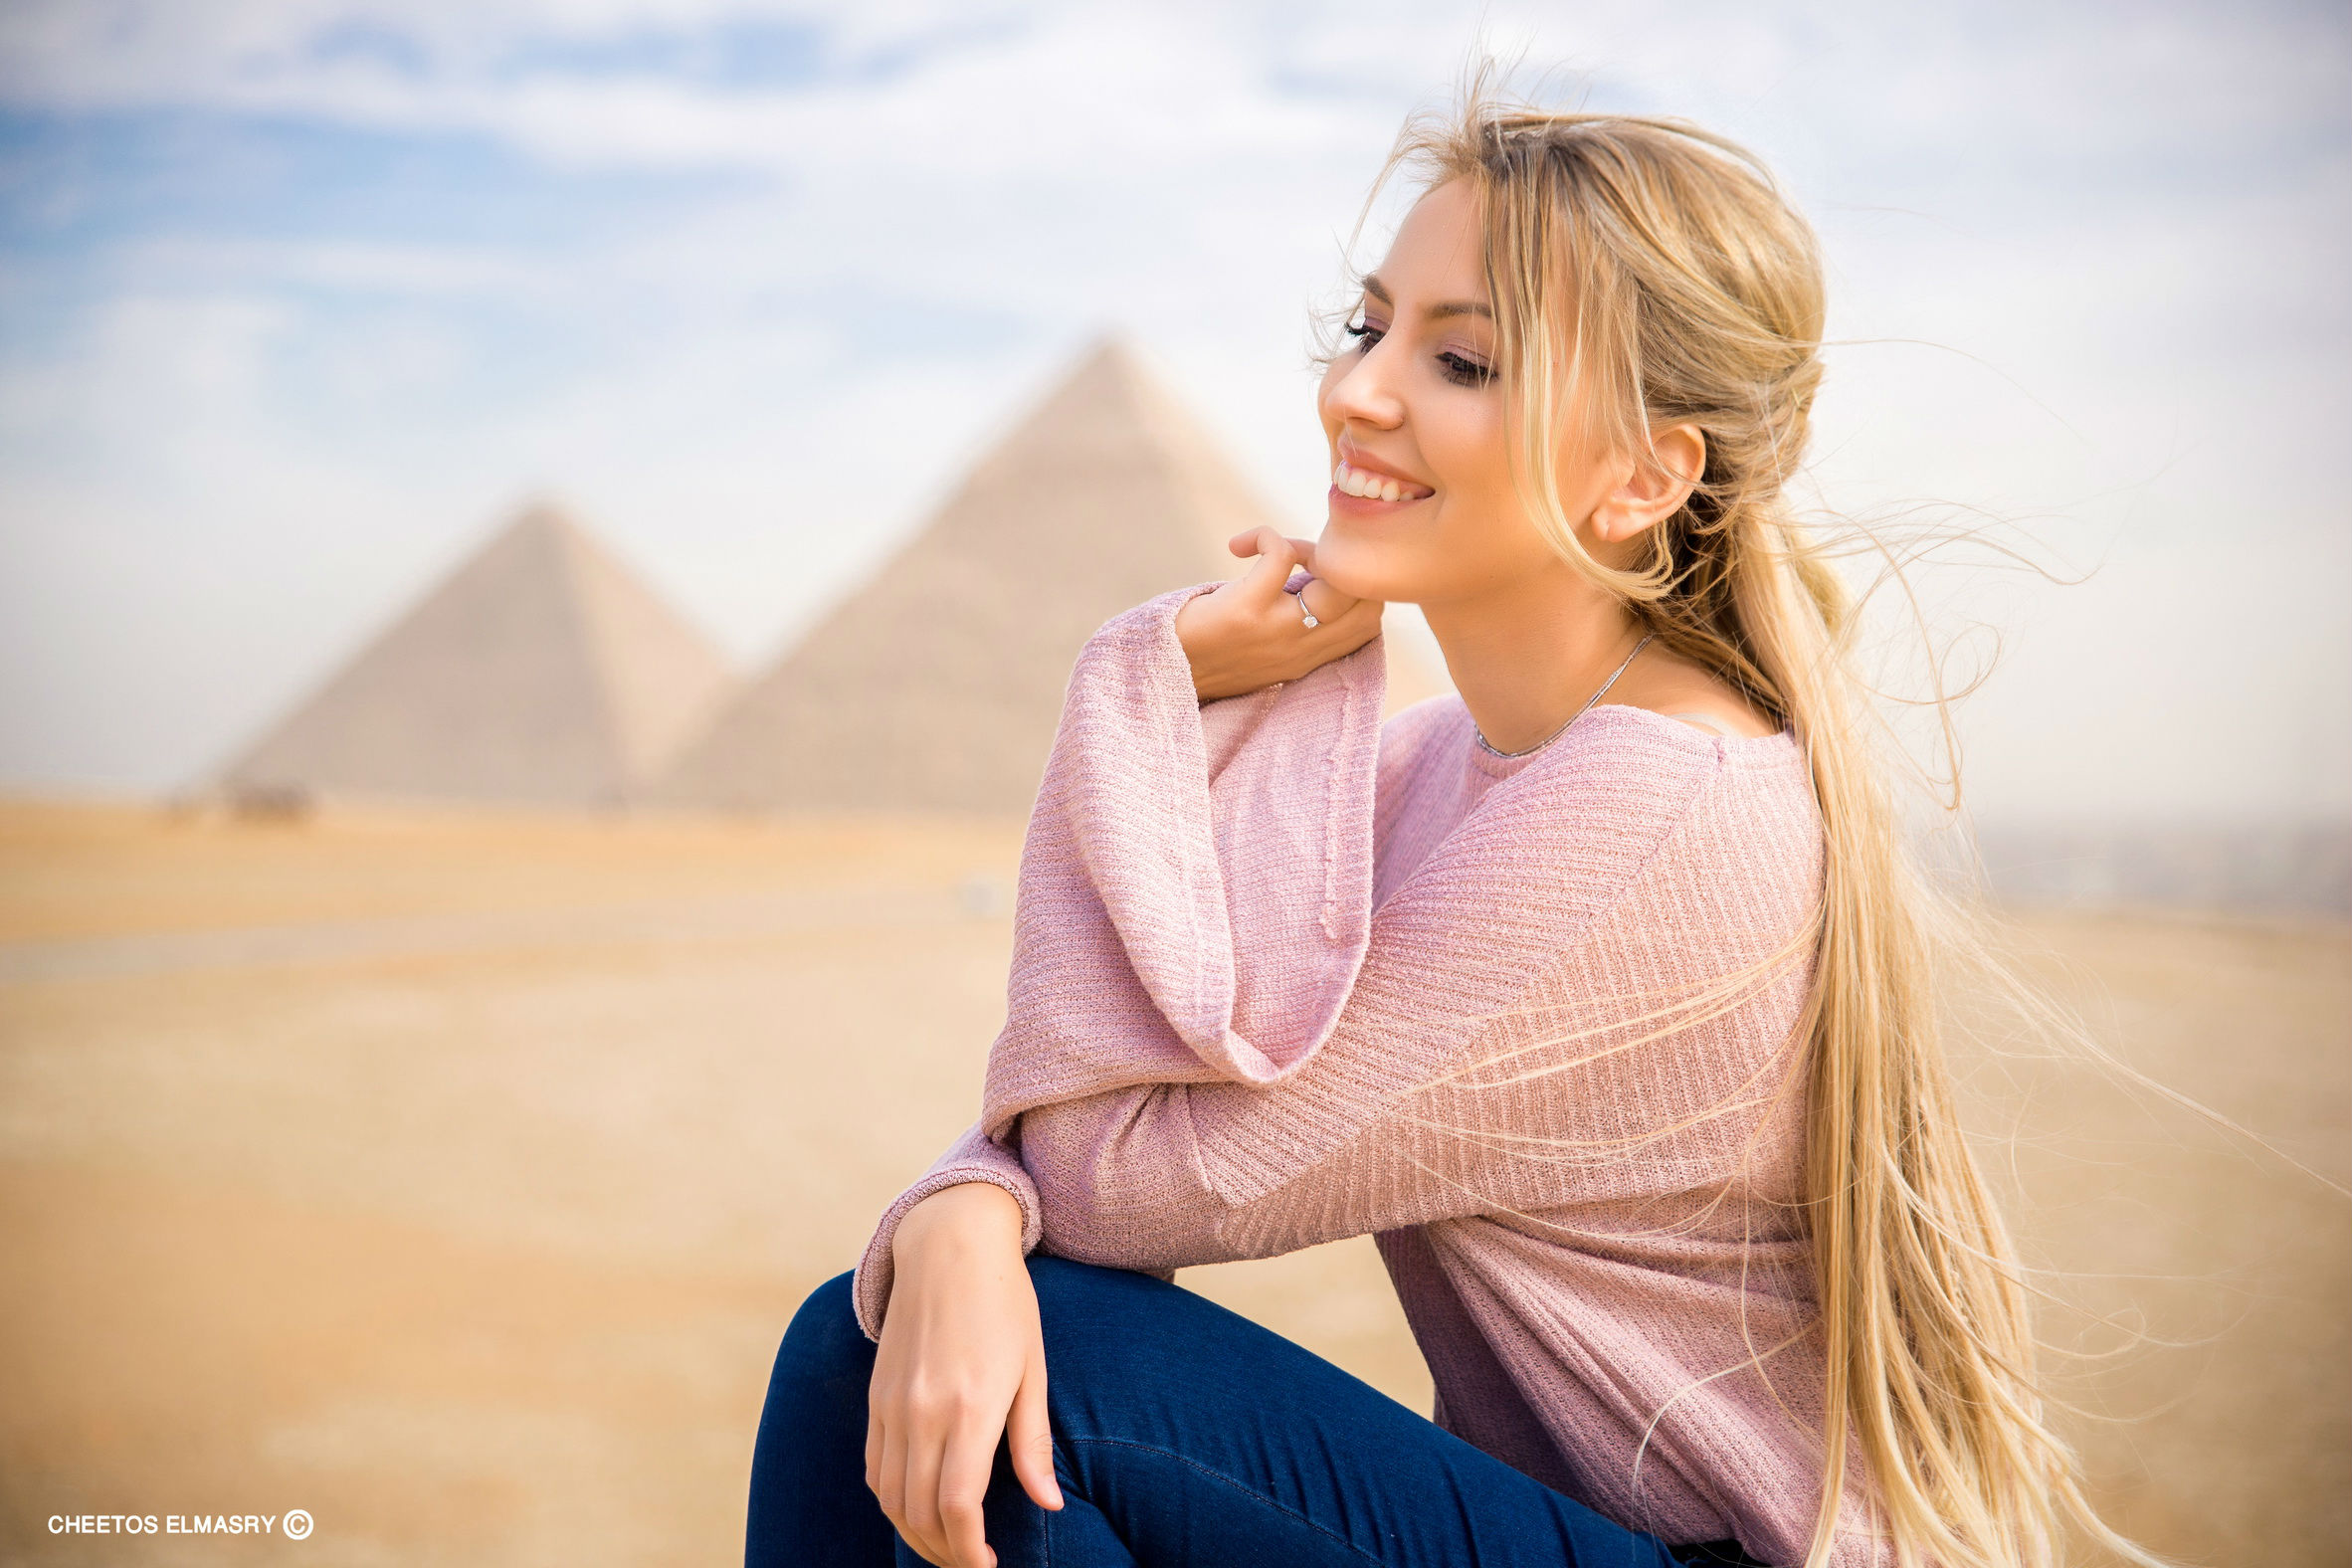 dating foreigners in egypt